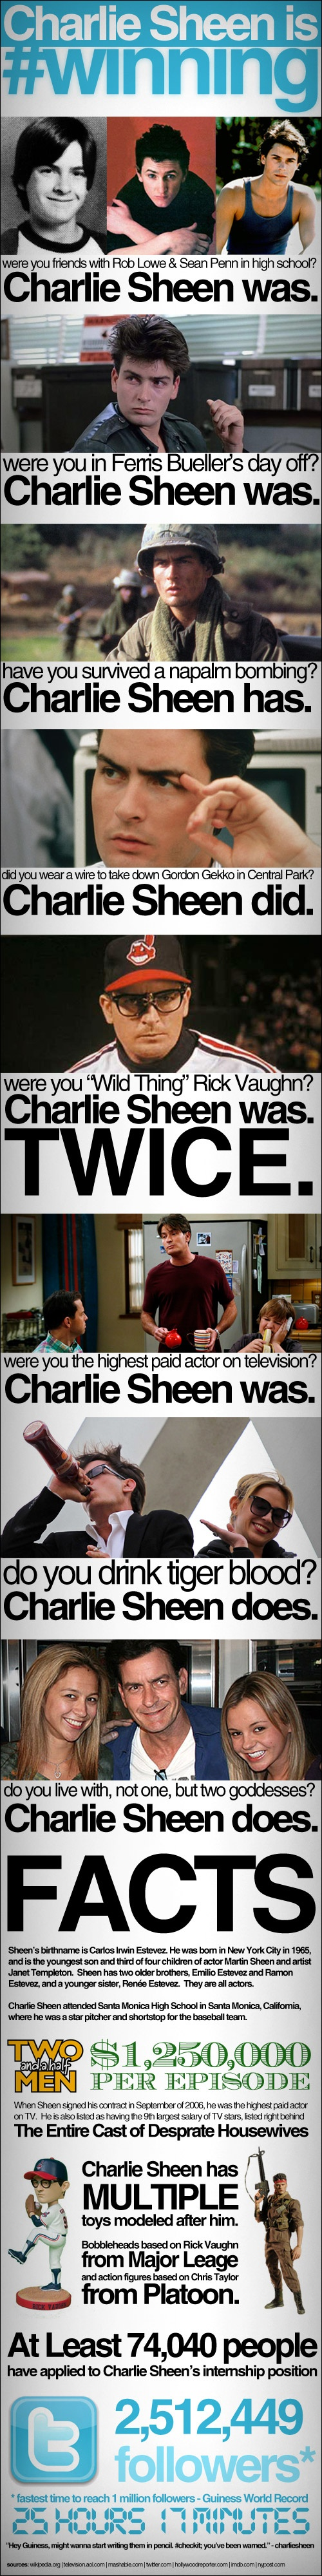 Charlie Sheen-I simply adored him when i was a kid!